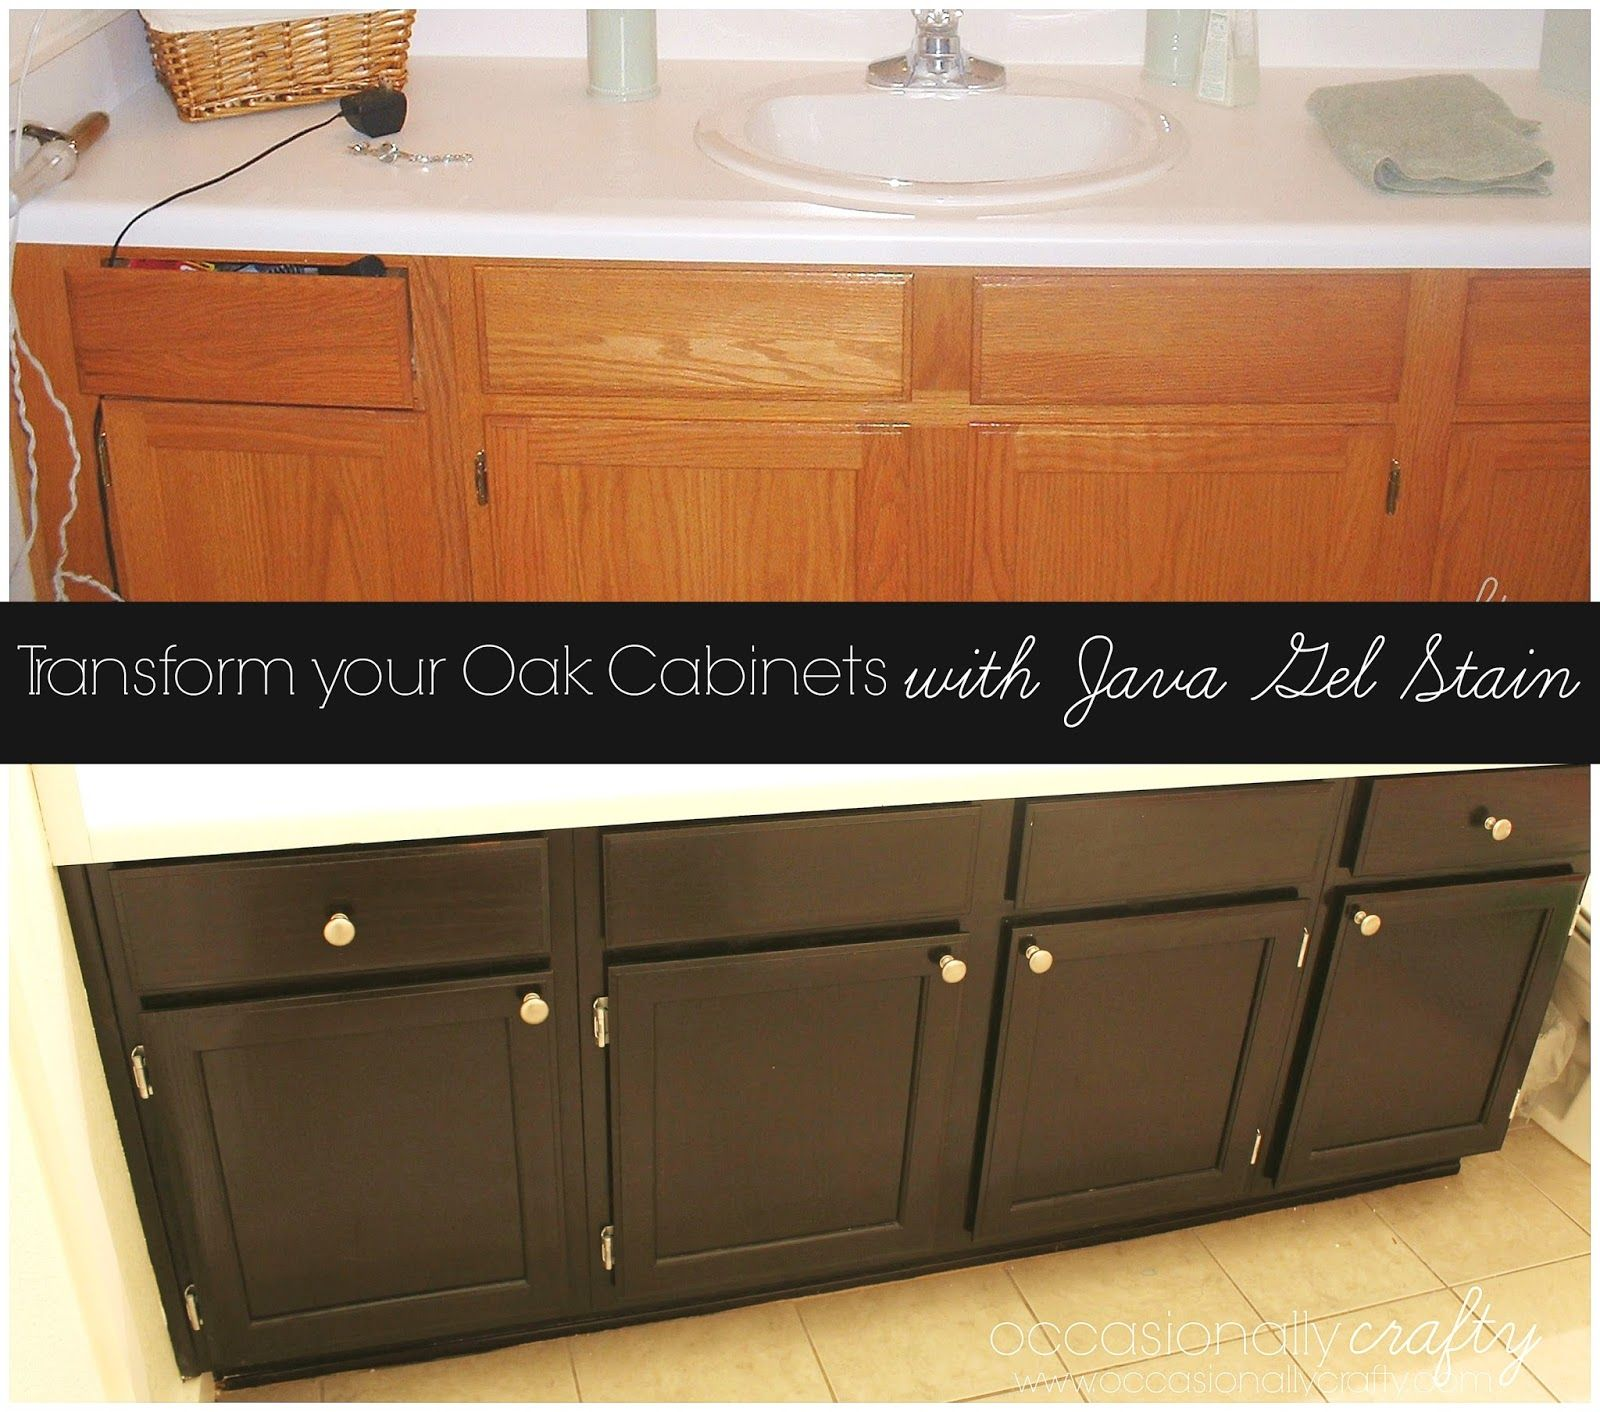 Painting golden oak cabinets - Transform Your Golden Oak Cabinets With Java Gel Stain